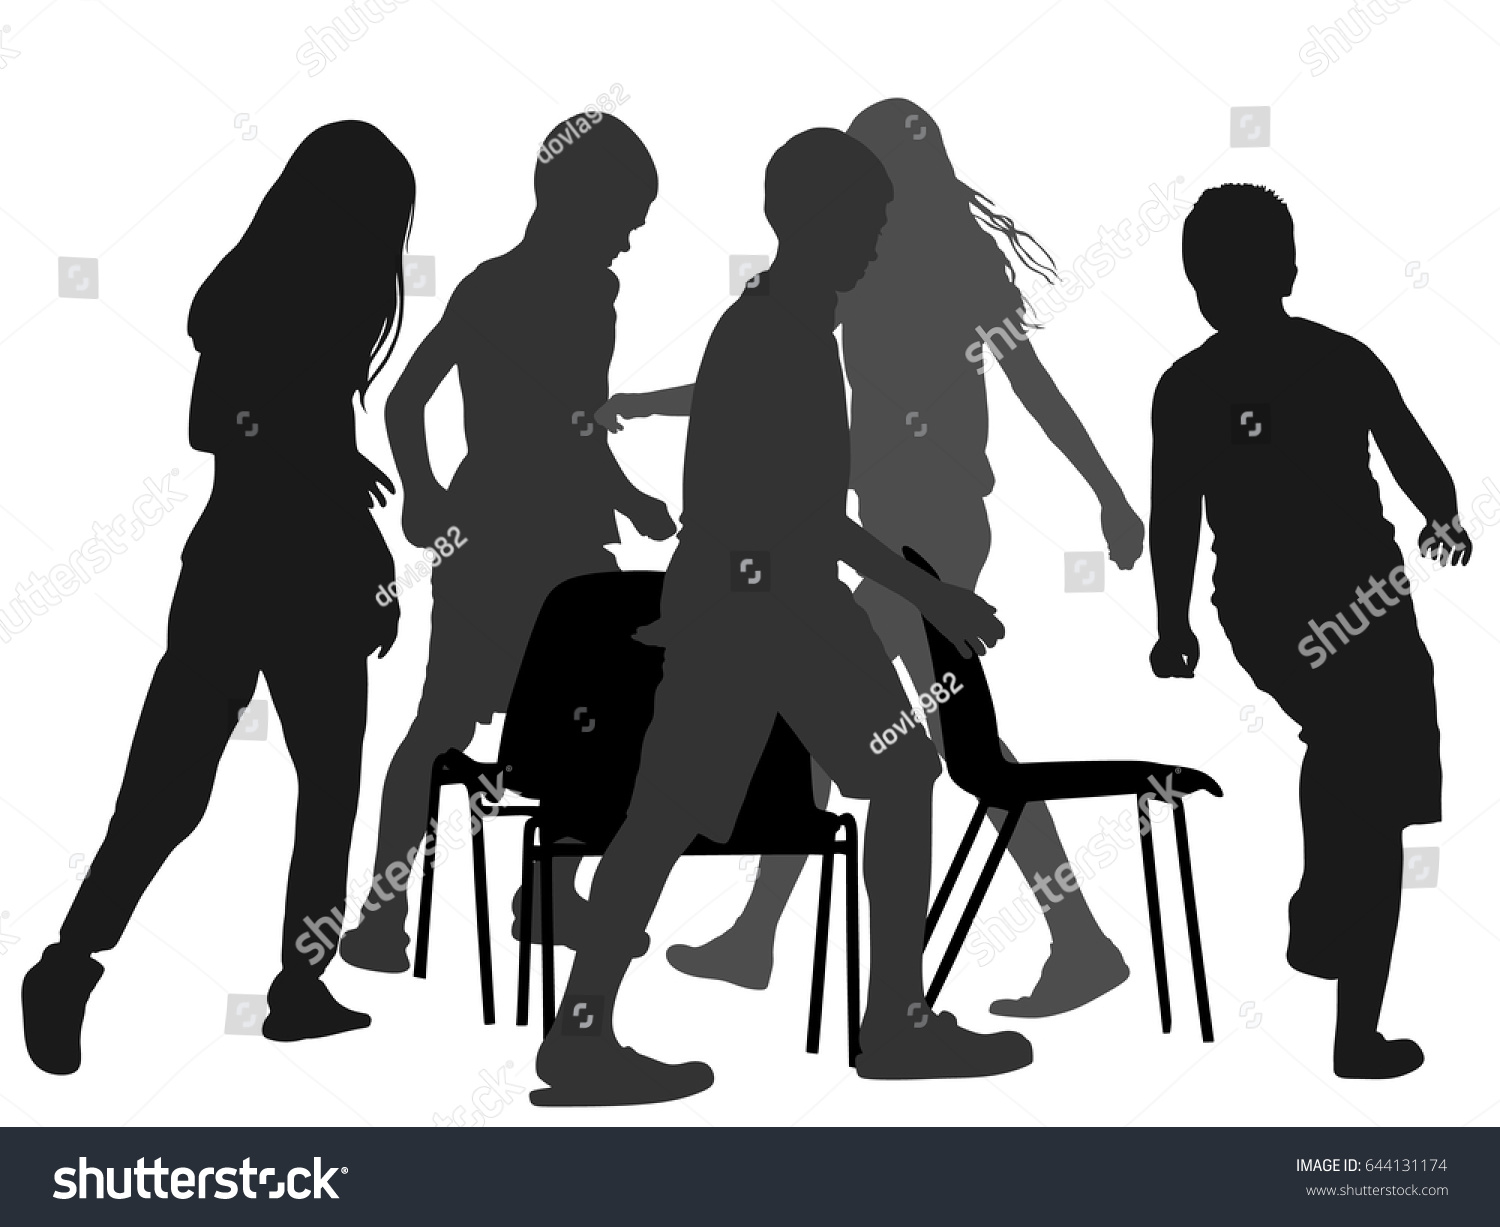 Musical chair game for kids - Children Playing Music Chair Game Vector Silhouette Illustration Happy Birthday Animation Kids Run